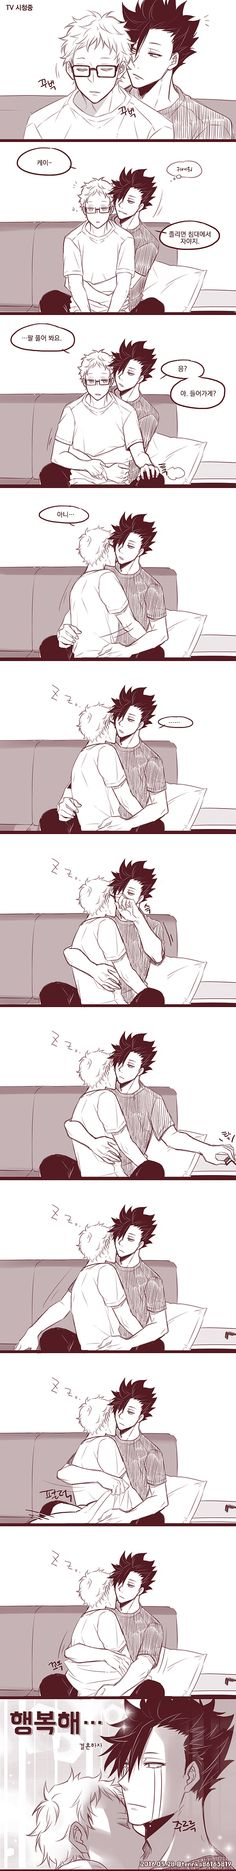 Don't know what it says but I'm sure kuroo is a pathetic dork lol